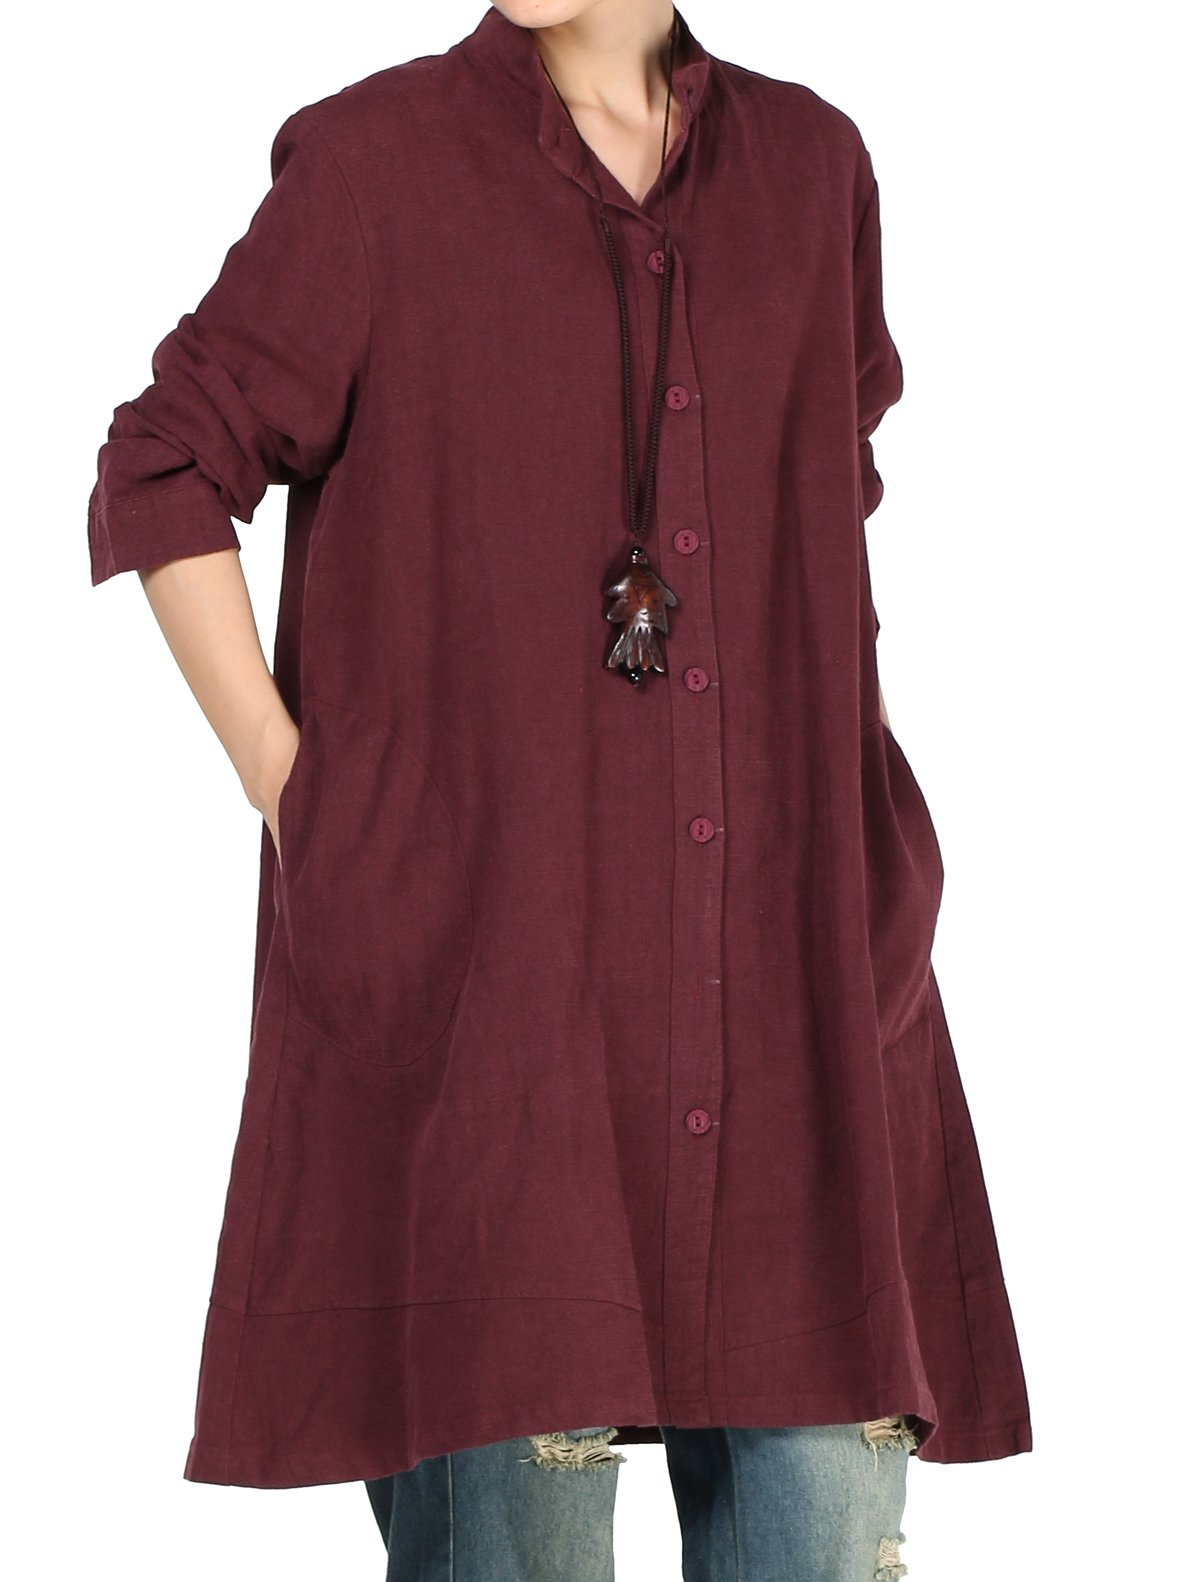 Mordenmiss Women's Cotton Linen Full Front Buttons Jacket Outfit with Pockets Style 1 M Burgundy